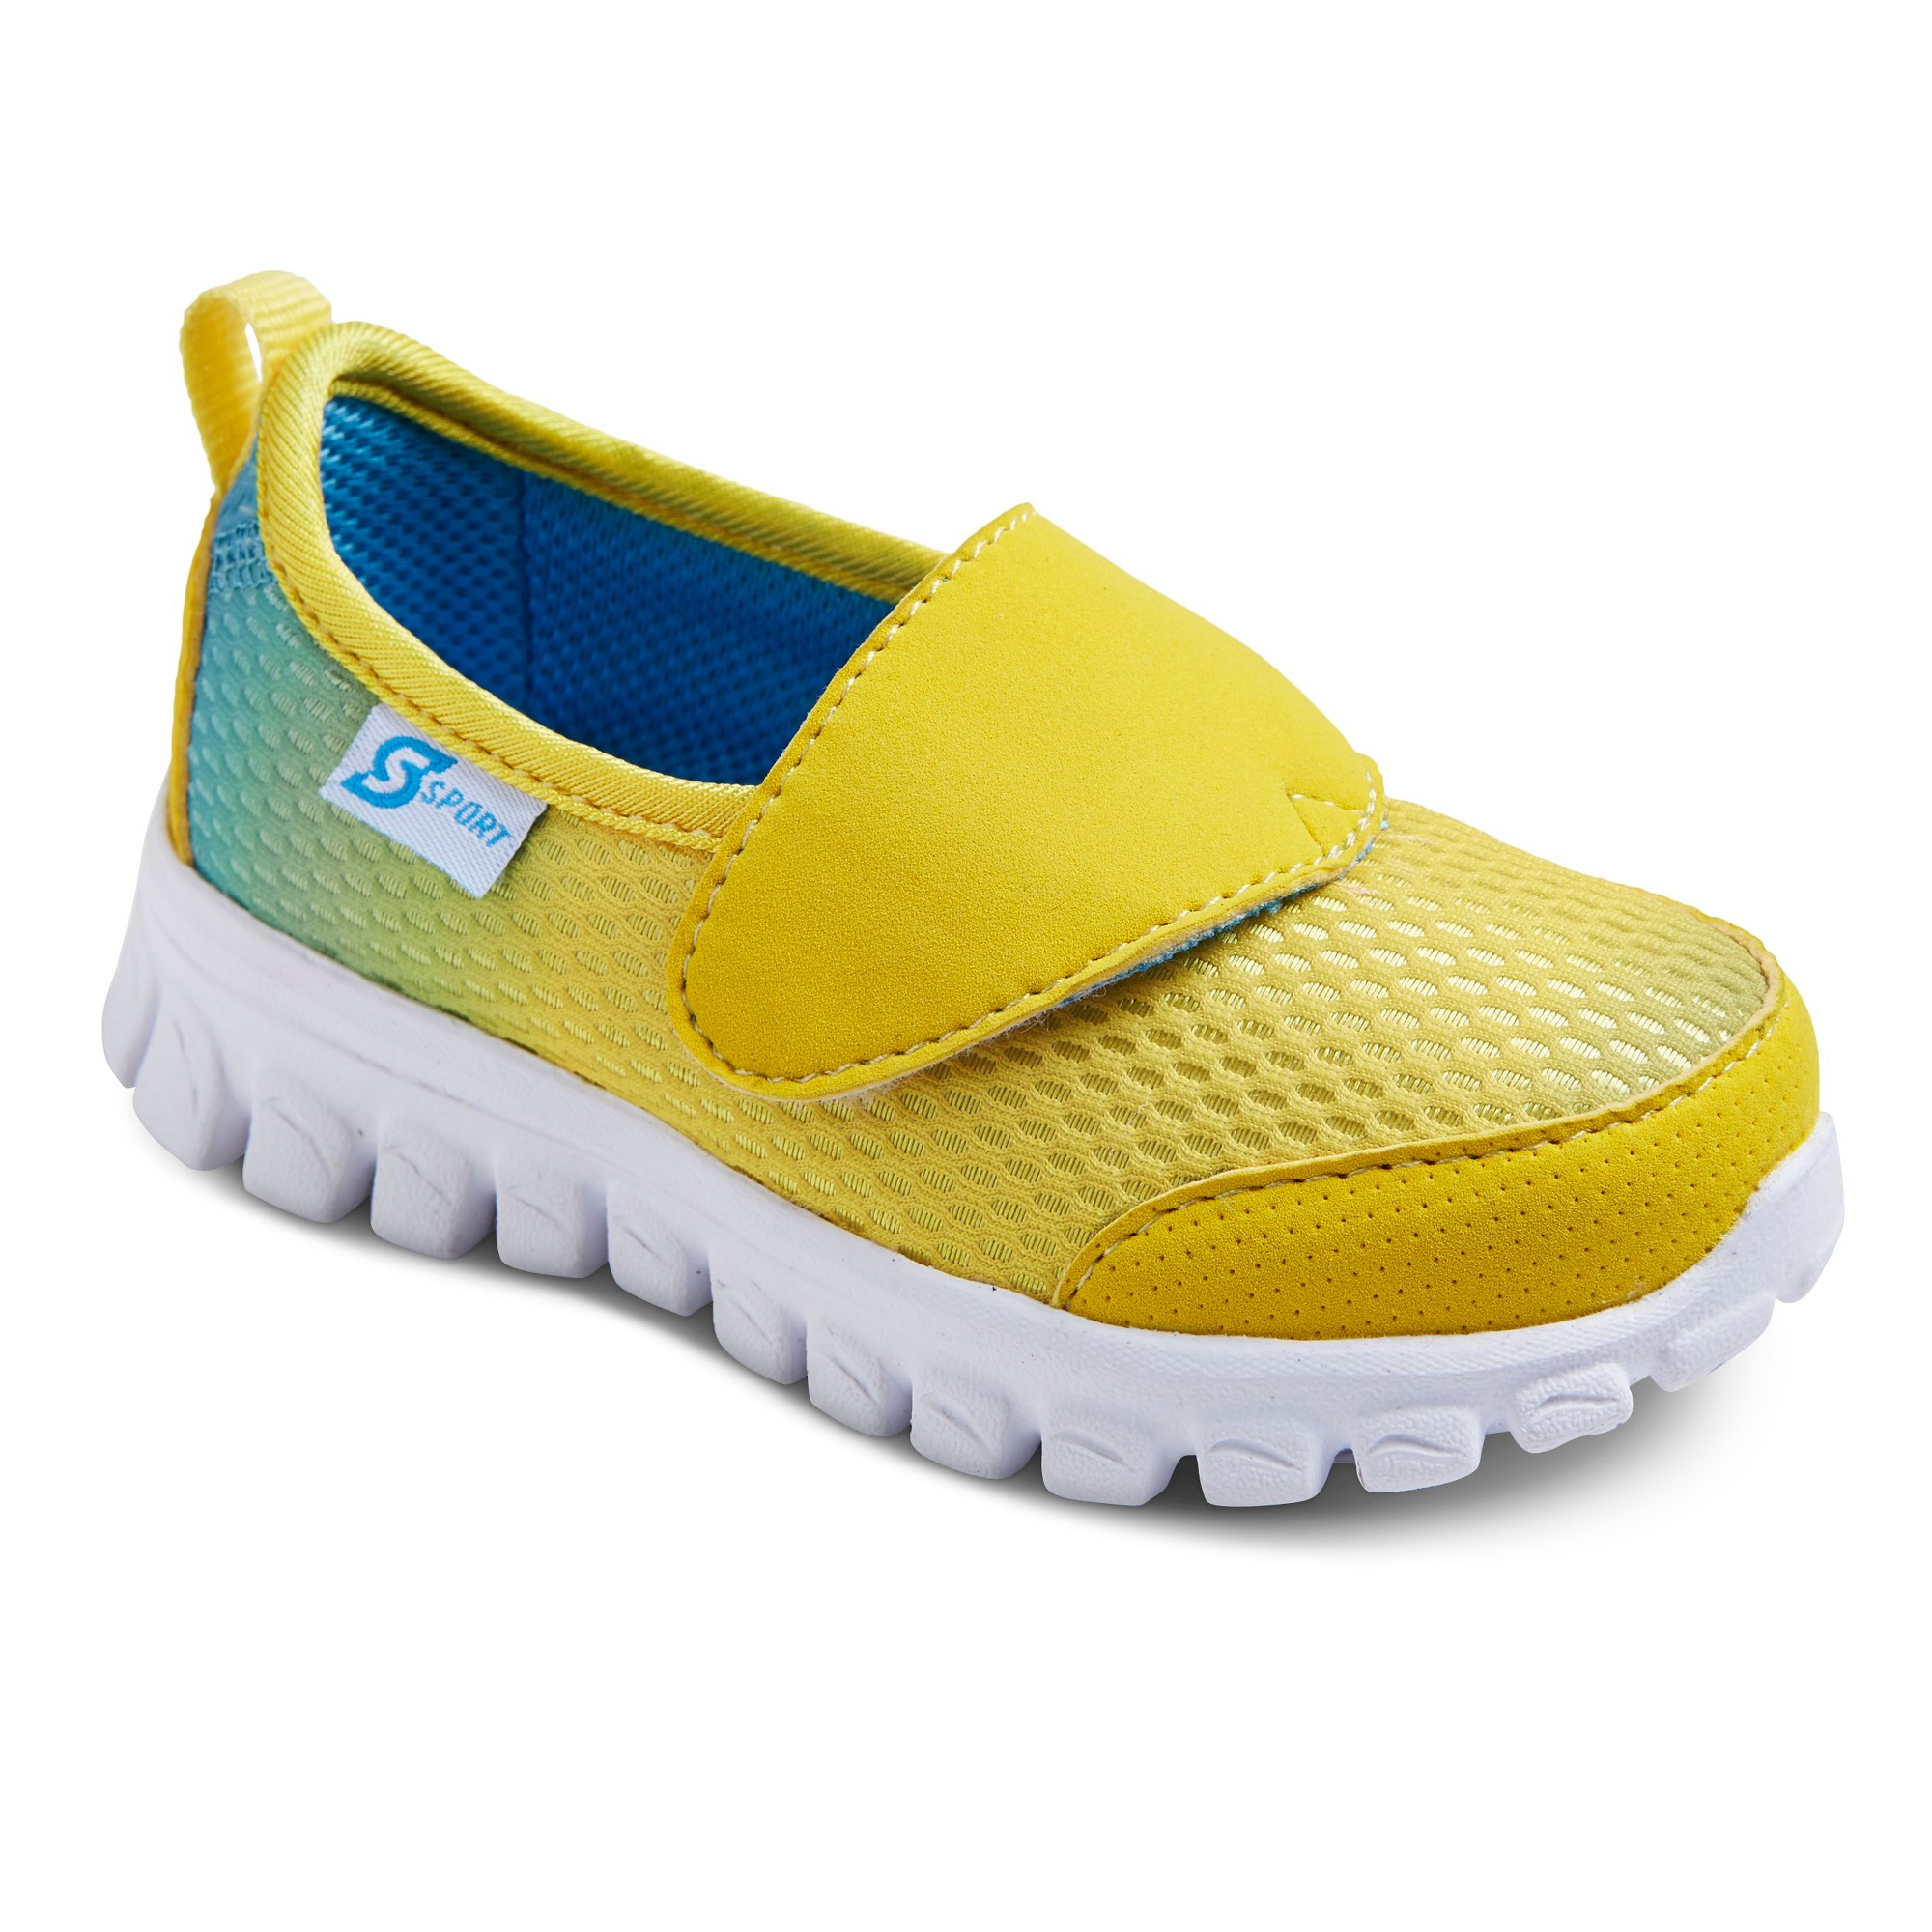 96859d958c04 Toddler Girls  S Sport Designed by Skechers Sneakers - Yellow 8 ...